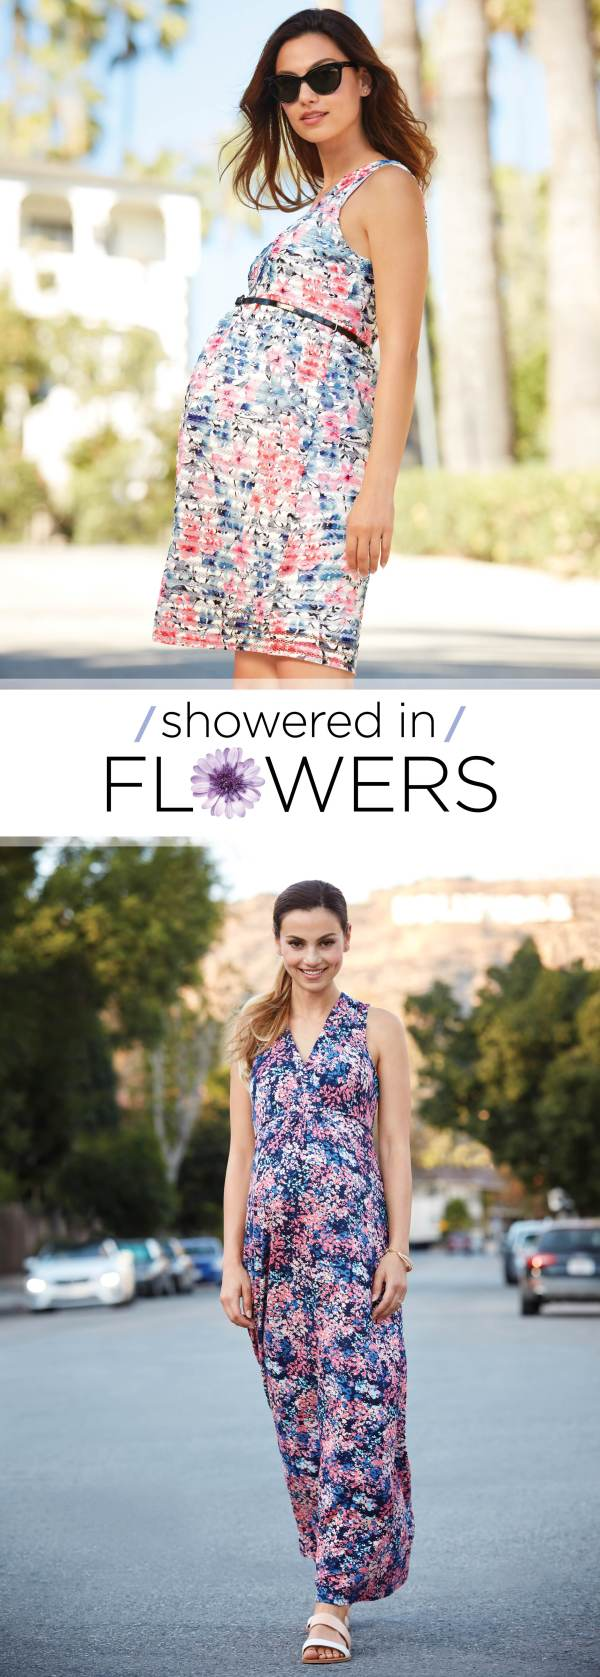 showered in flowers